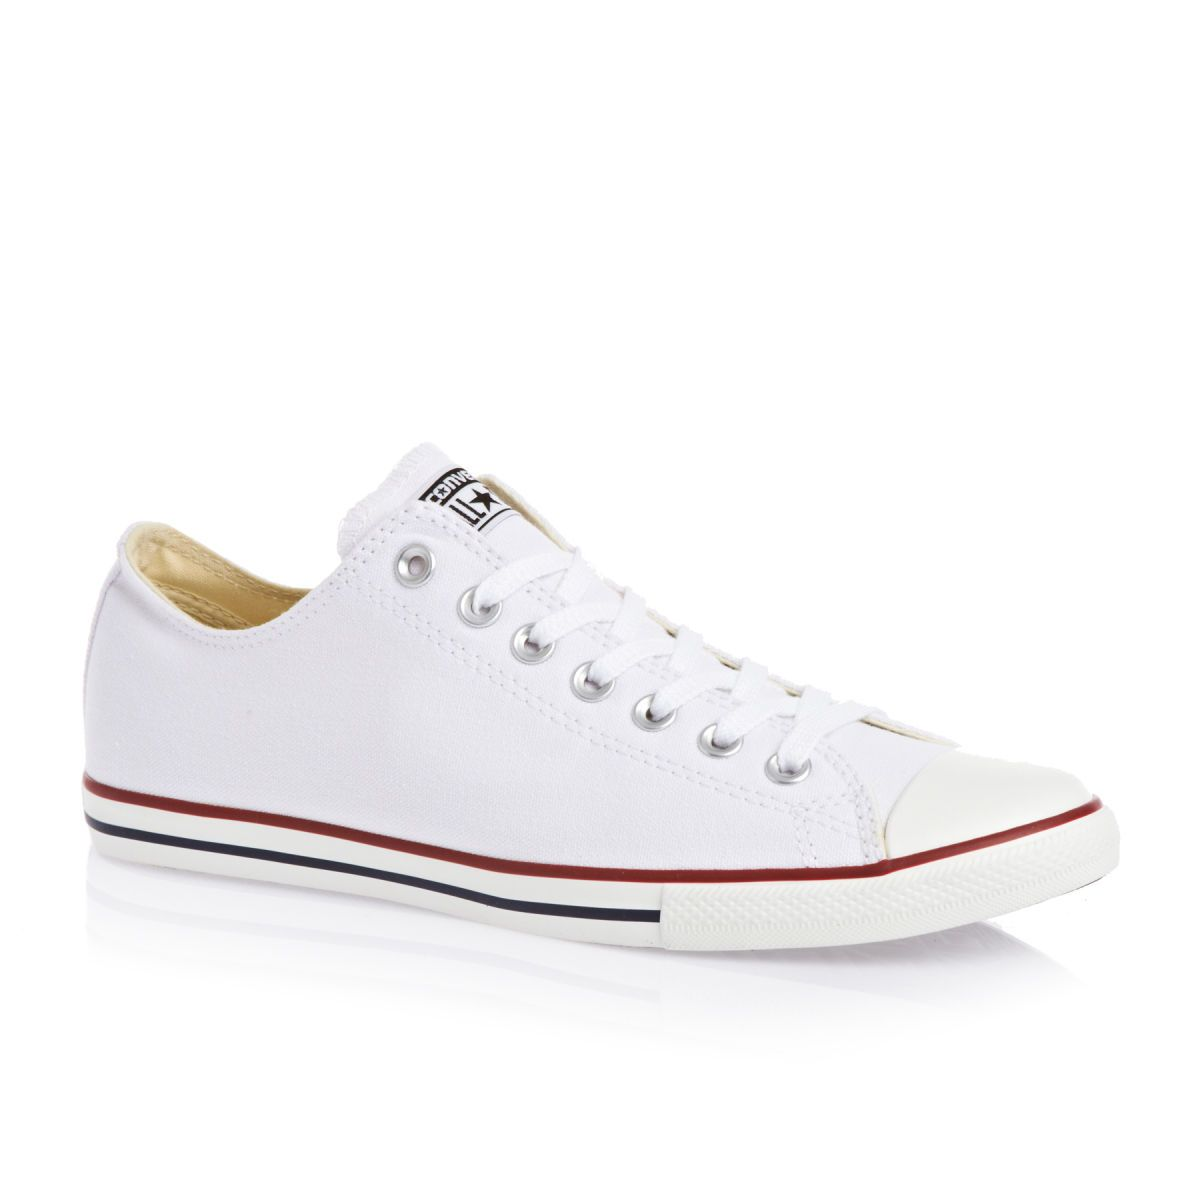 Converse Chuck Taylor Lean Ox Shoes - White